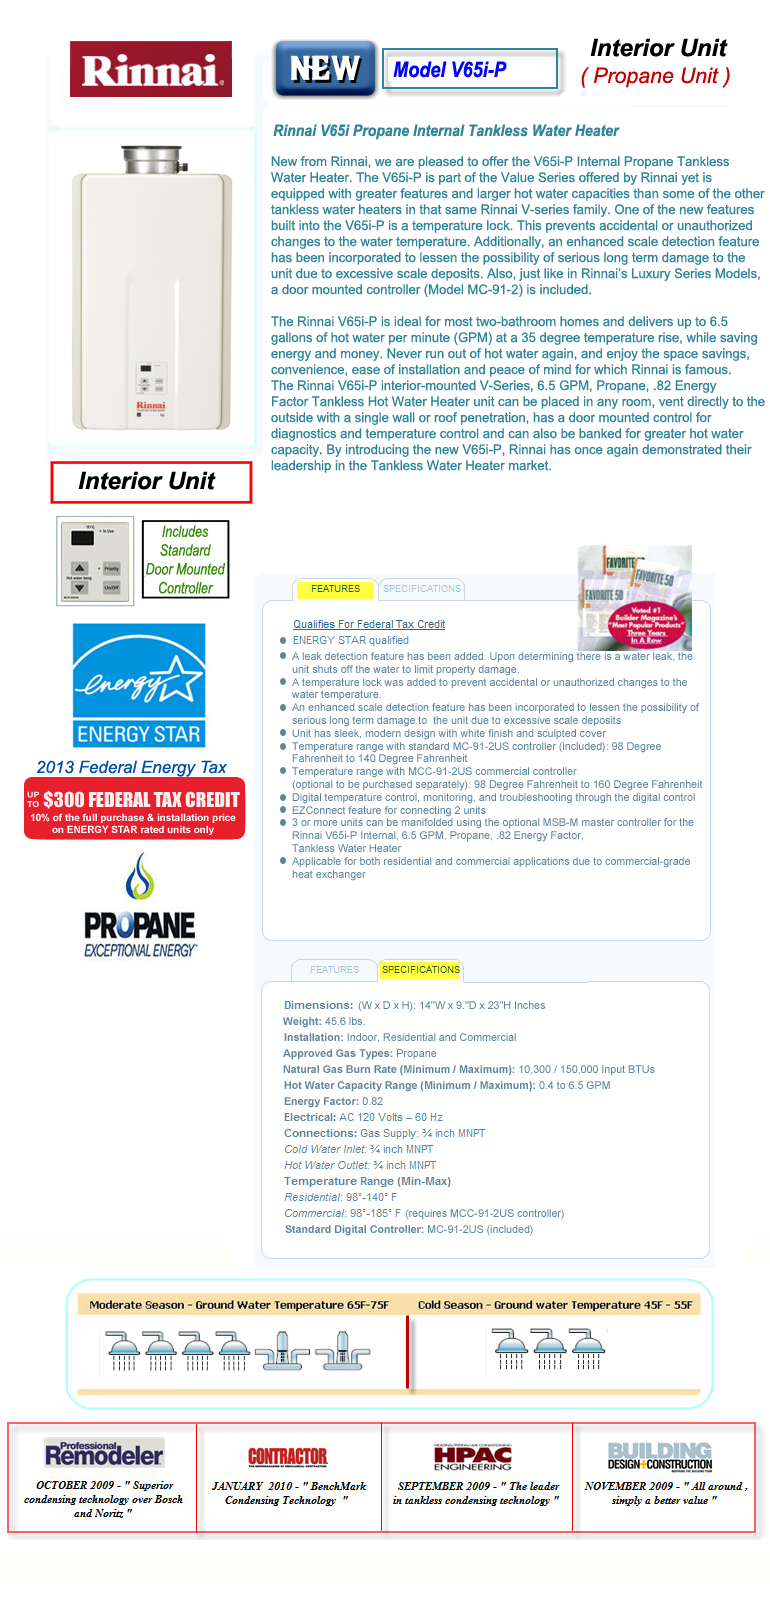 How to Use Rinnai Tankless Water Heater